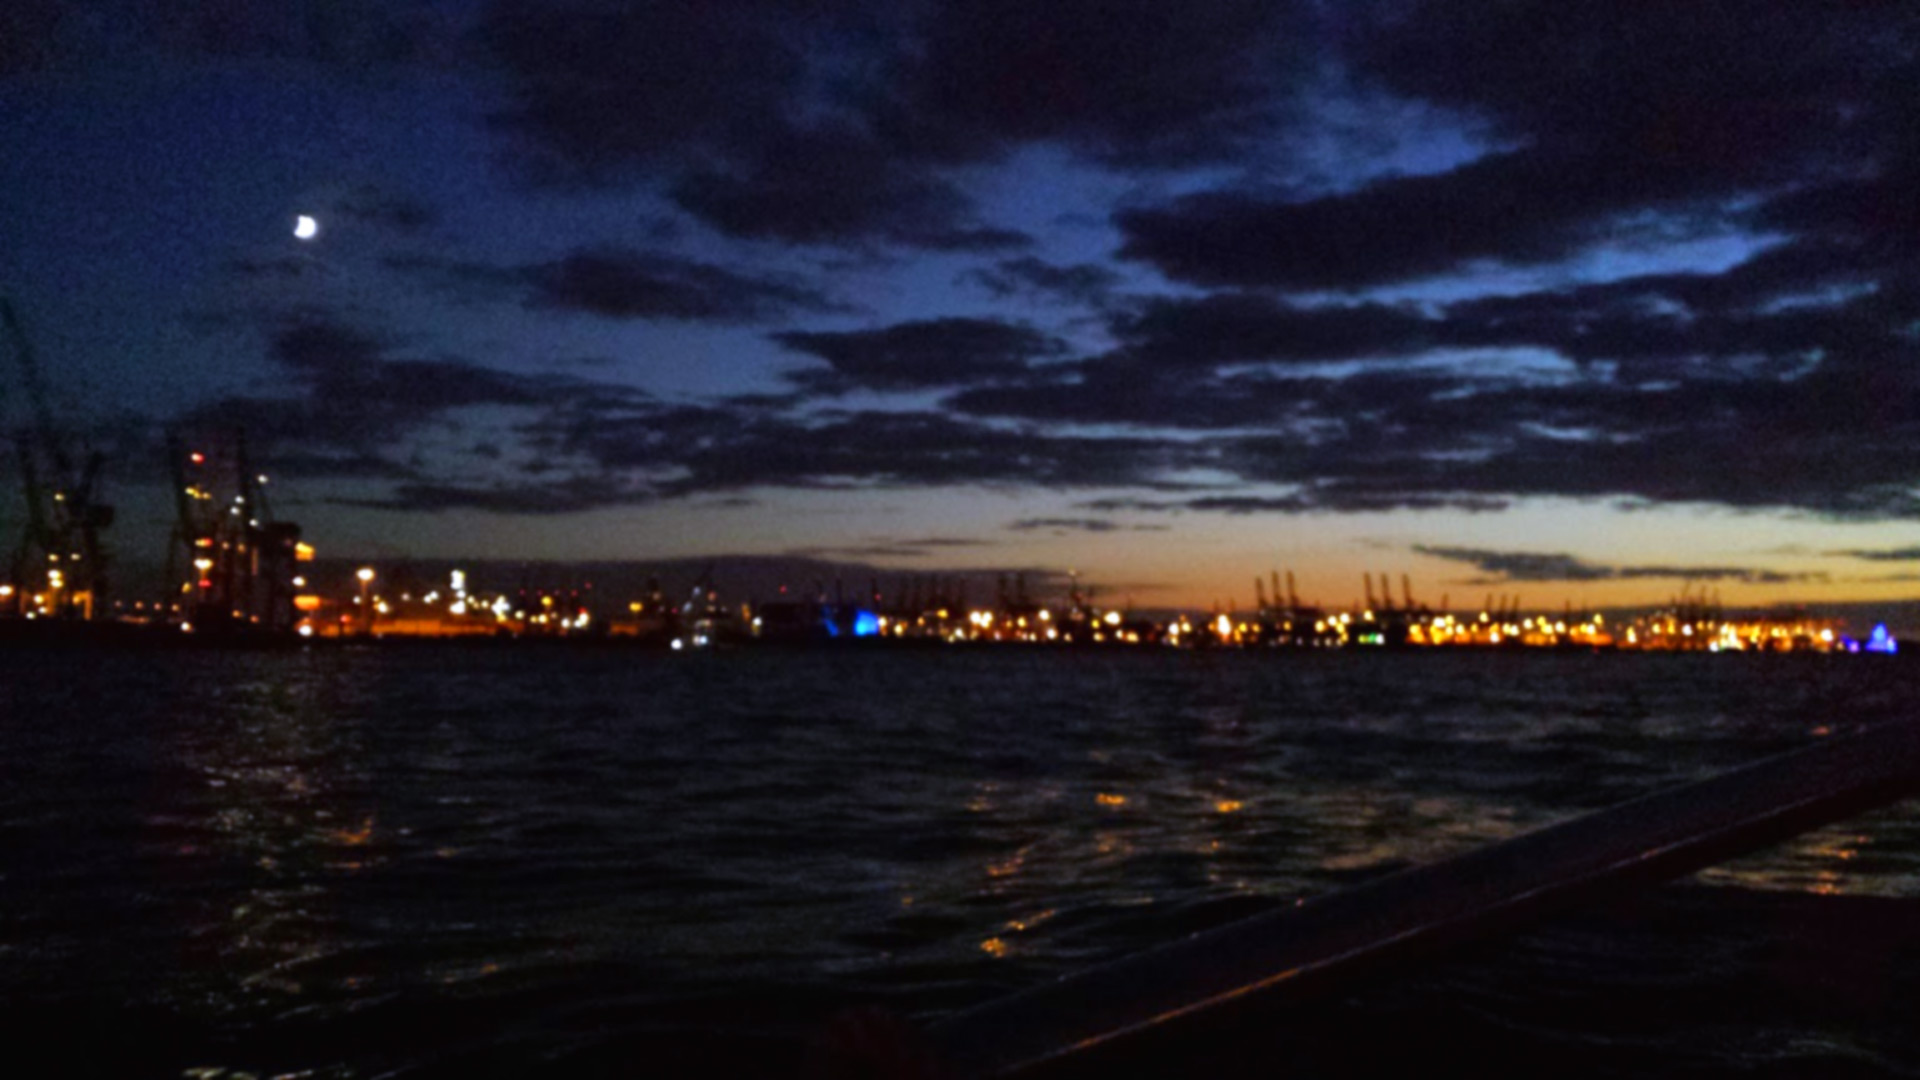 Everything blinks, flashes and lights up from time to time: Only a skilled sailor can navigate safely by night.